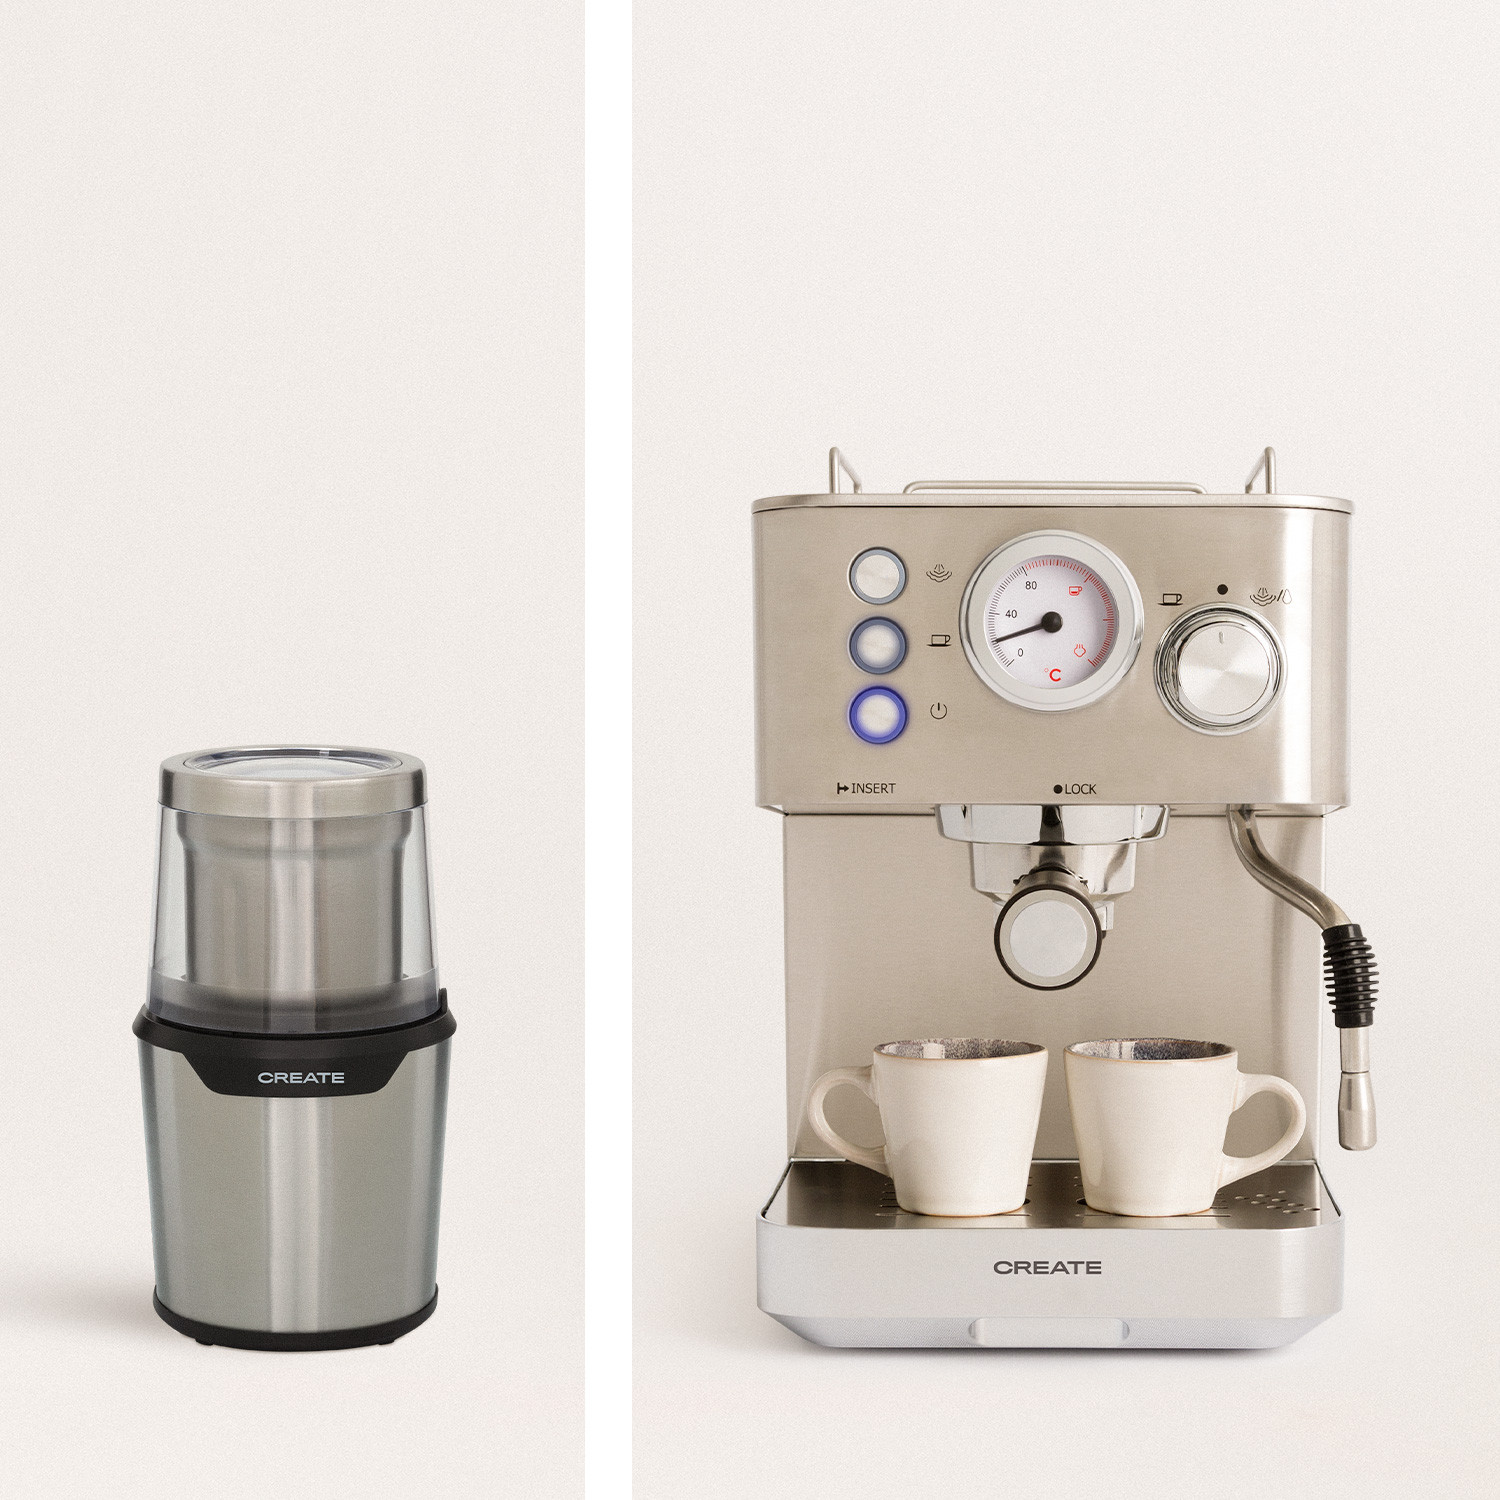 Pack - THERA CLASSIC Semiautomatic Express Coffee Maker + KOFIGRIND DUO Coffee and Spice Grinder, imagen de galería 1019889